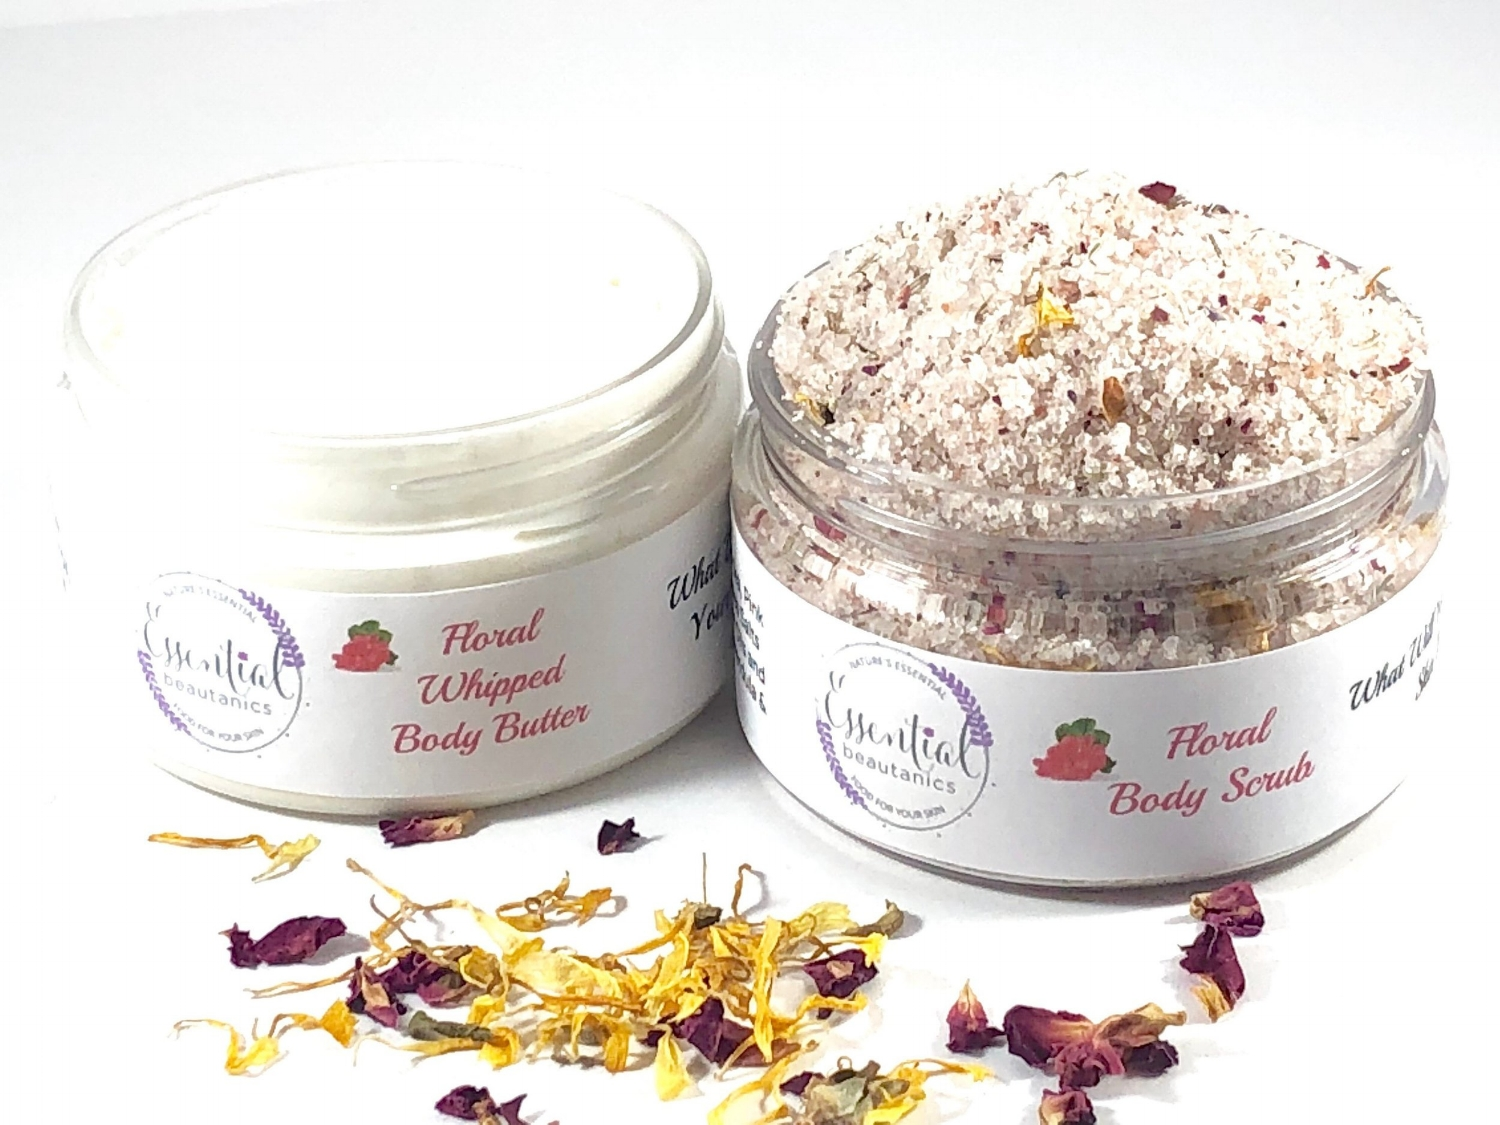 floral-whipped-body butter.jpg